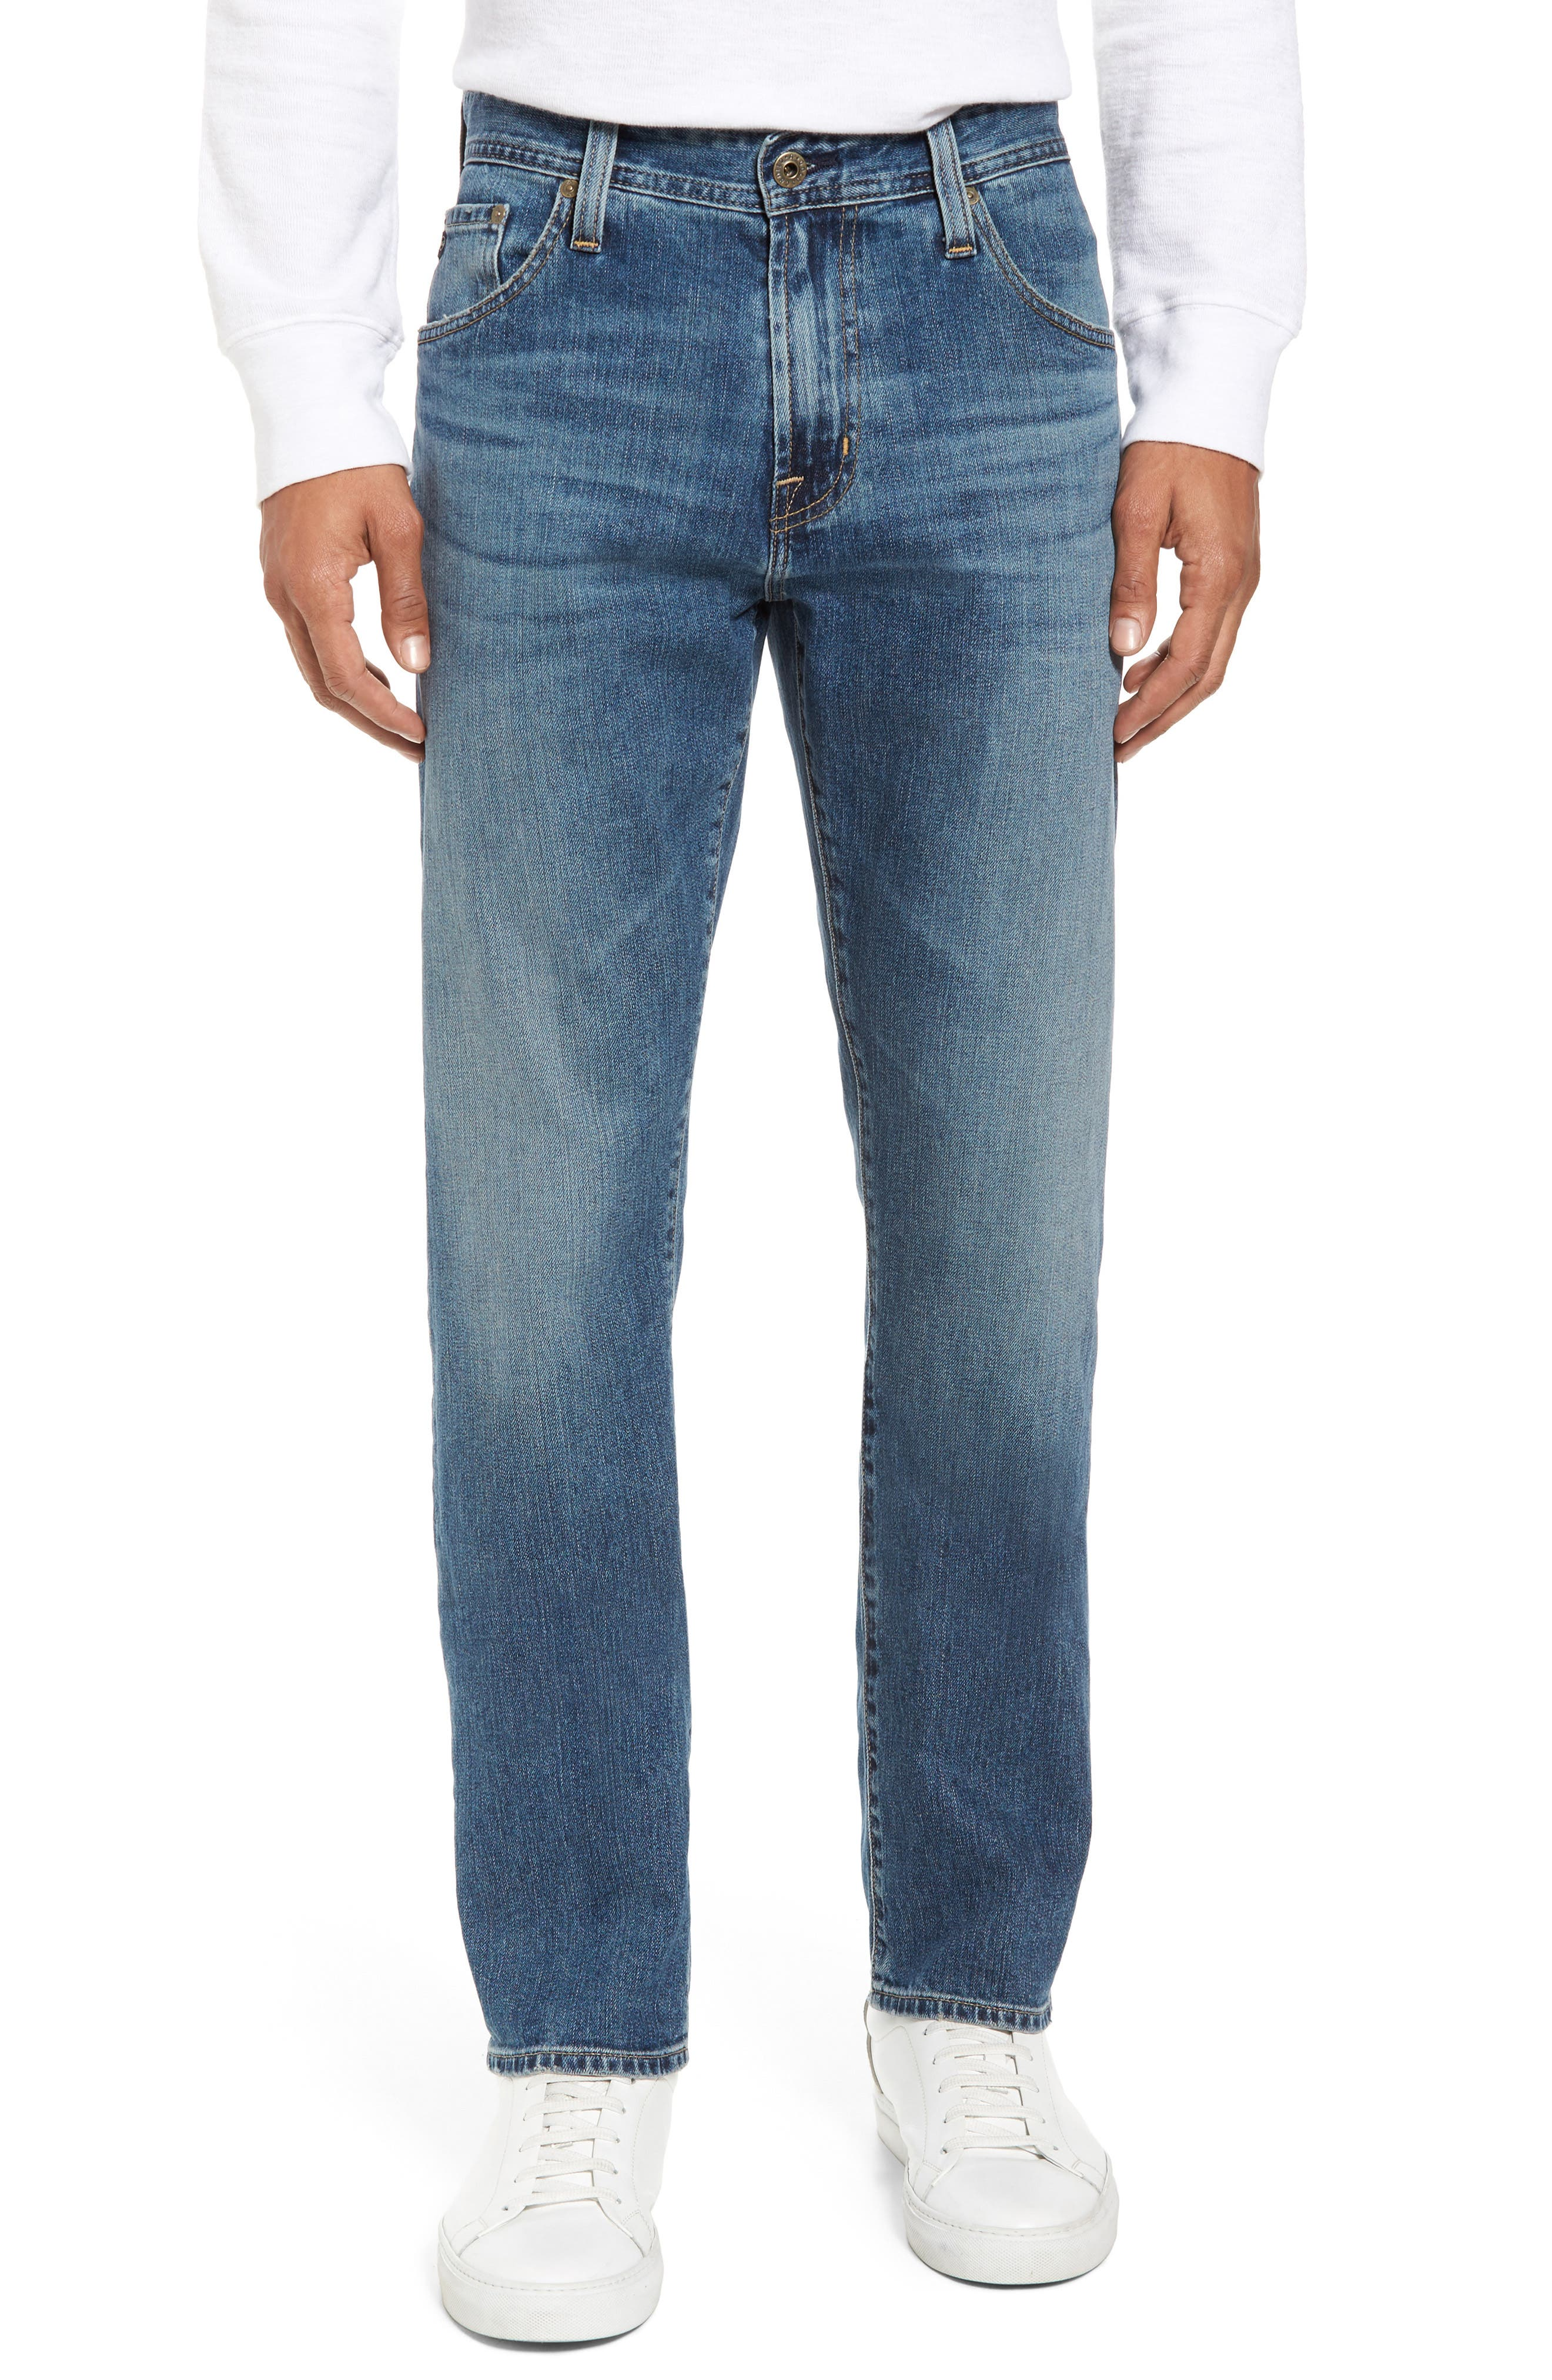 Ives Straight Fit Jeans,                         Main,                         color, 419